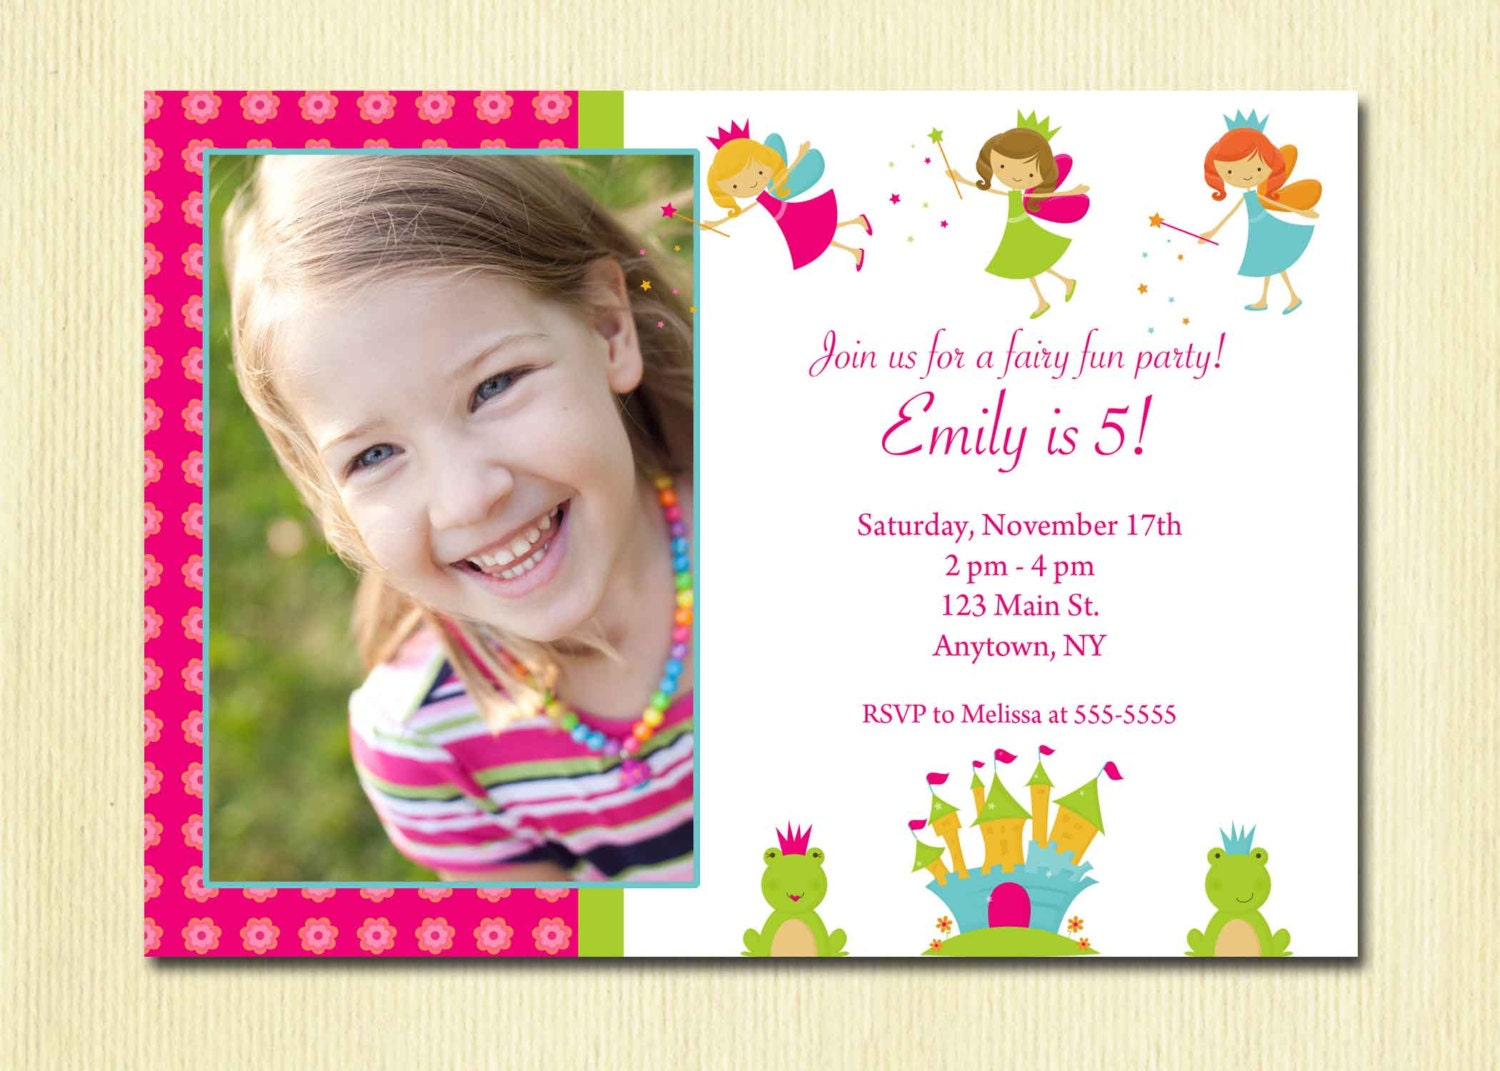 Birthday invitation wording for 3 year old boy free printable birthday invitation wording for 3 year old boy as nice style to make amazing invitations sample stopboris Image collections